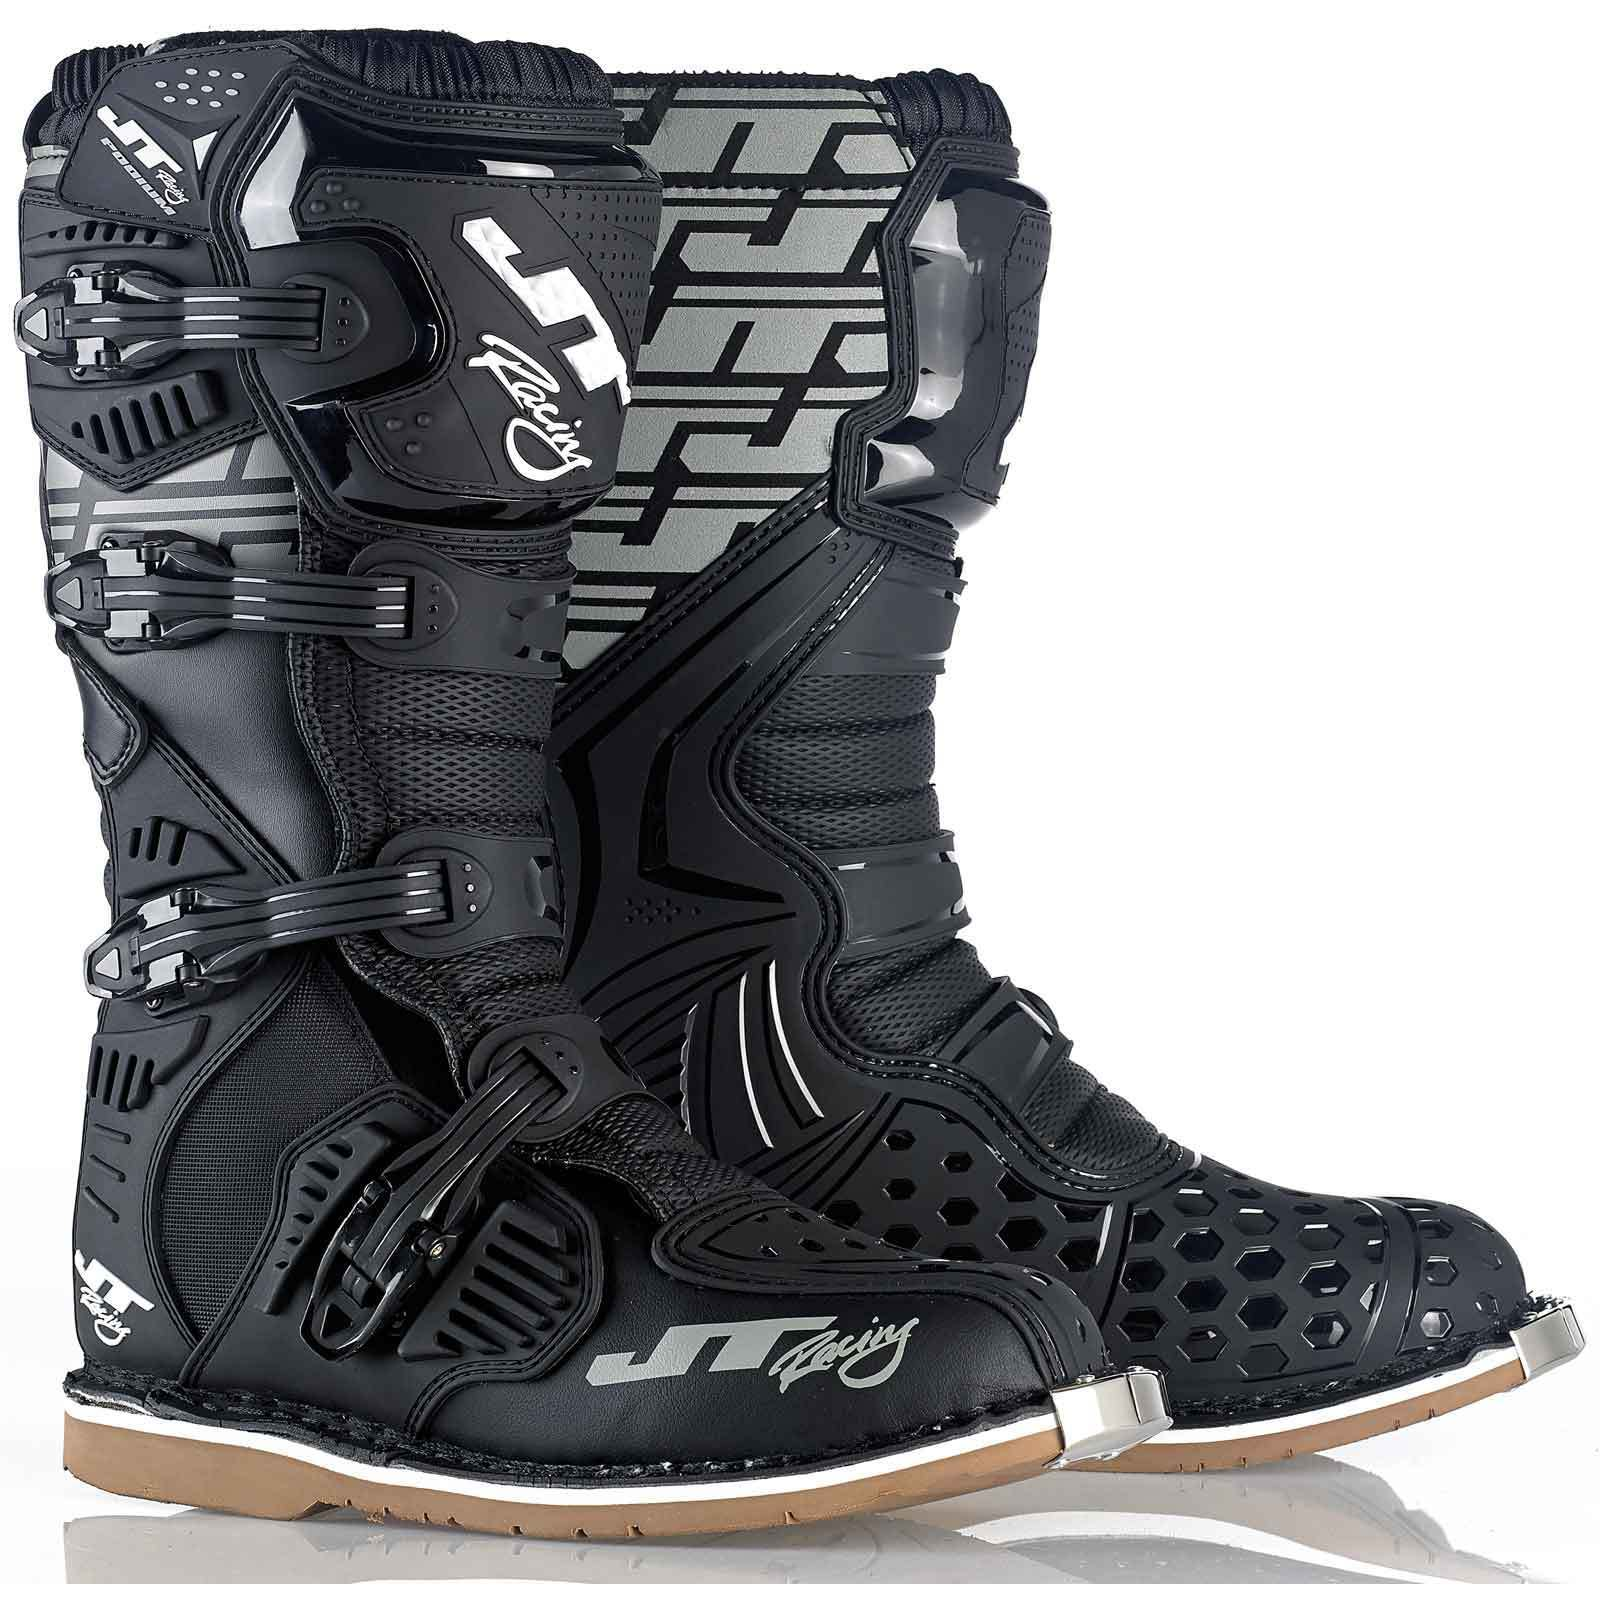 JT RACING USA-2017 Podium Boots, Black